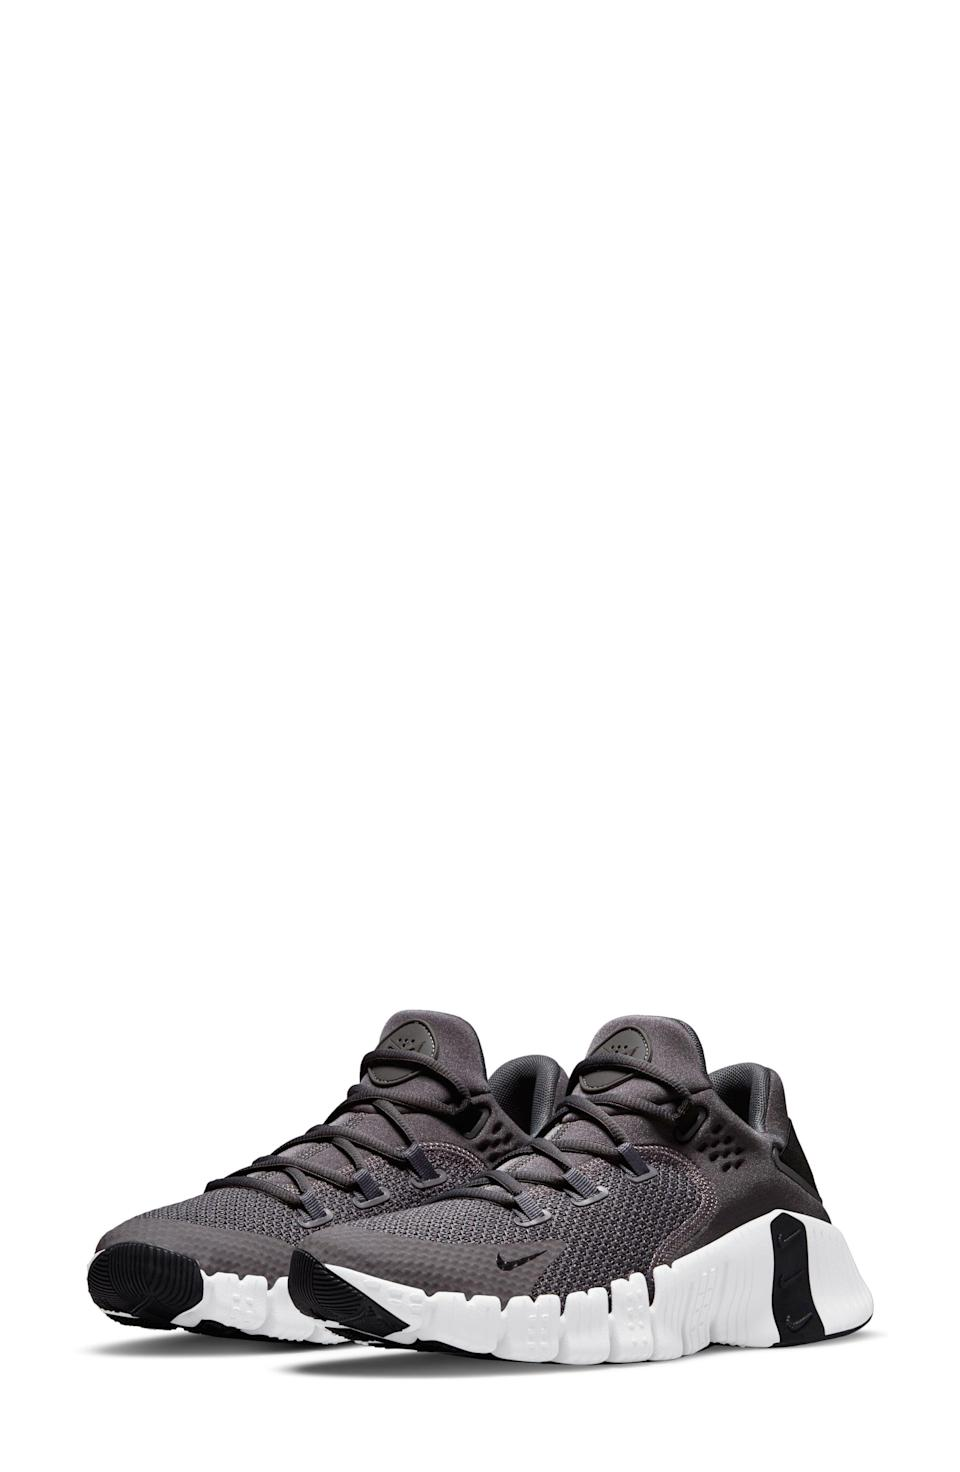 """<p><strong>NIKE</strong></p><p>nordstrom.com</p><p><a href=""""https://go.redirectingat.com?id=74968X1596630&url=https%3A%2F%2Fwww.nordstrom.com%2Fs%2Fnike-free-metcon-4-training-shoe-men%2F5741658&sref=https%3A%2F%2Fwww.menshealth.com%2Fstyle%2Fg37081969%2Fnordstroms-anniversary-sale-best-sneakers%2F"""" rel=""""nofollow noopener"""" target=""""_blank"""" data-ylk=""""slk:BUY IT HERE"""" class=""""link rapid-noclick-resp"""">BUY IT HERE</a></p><p><del>$120<strong><br></strong></del><strong>$89.90</strong></p><p>If you want your feet to feel super-secure as you move through your workout, the internal webbing and biomechanic design will give you the support you need.</p>"""